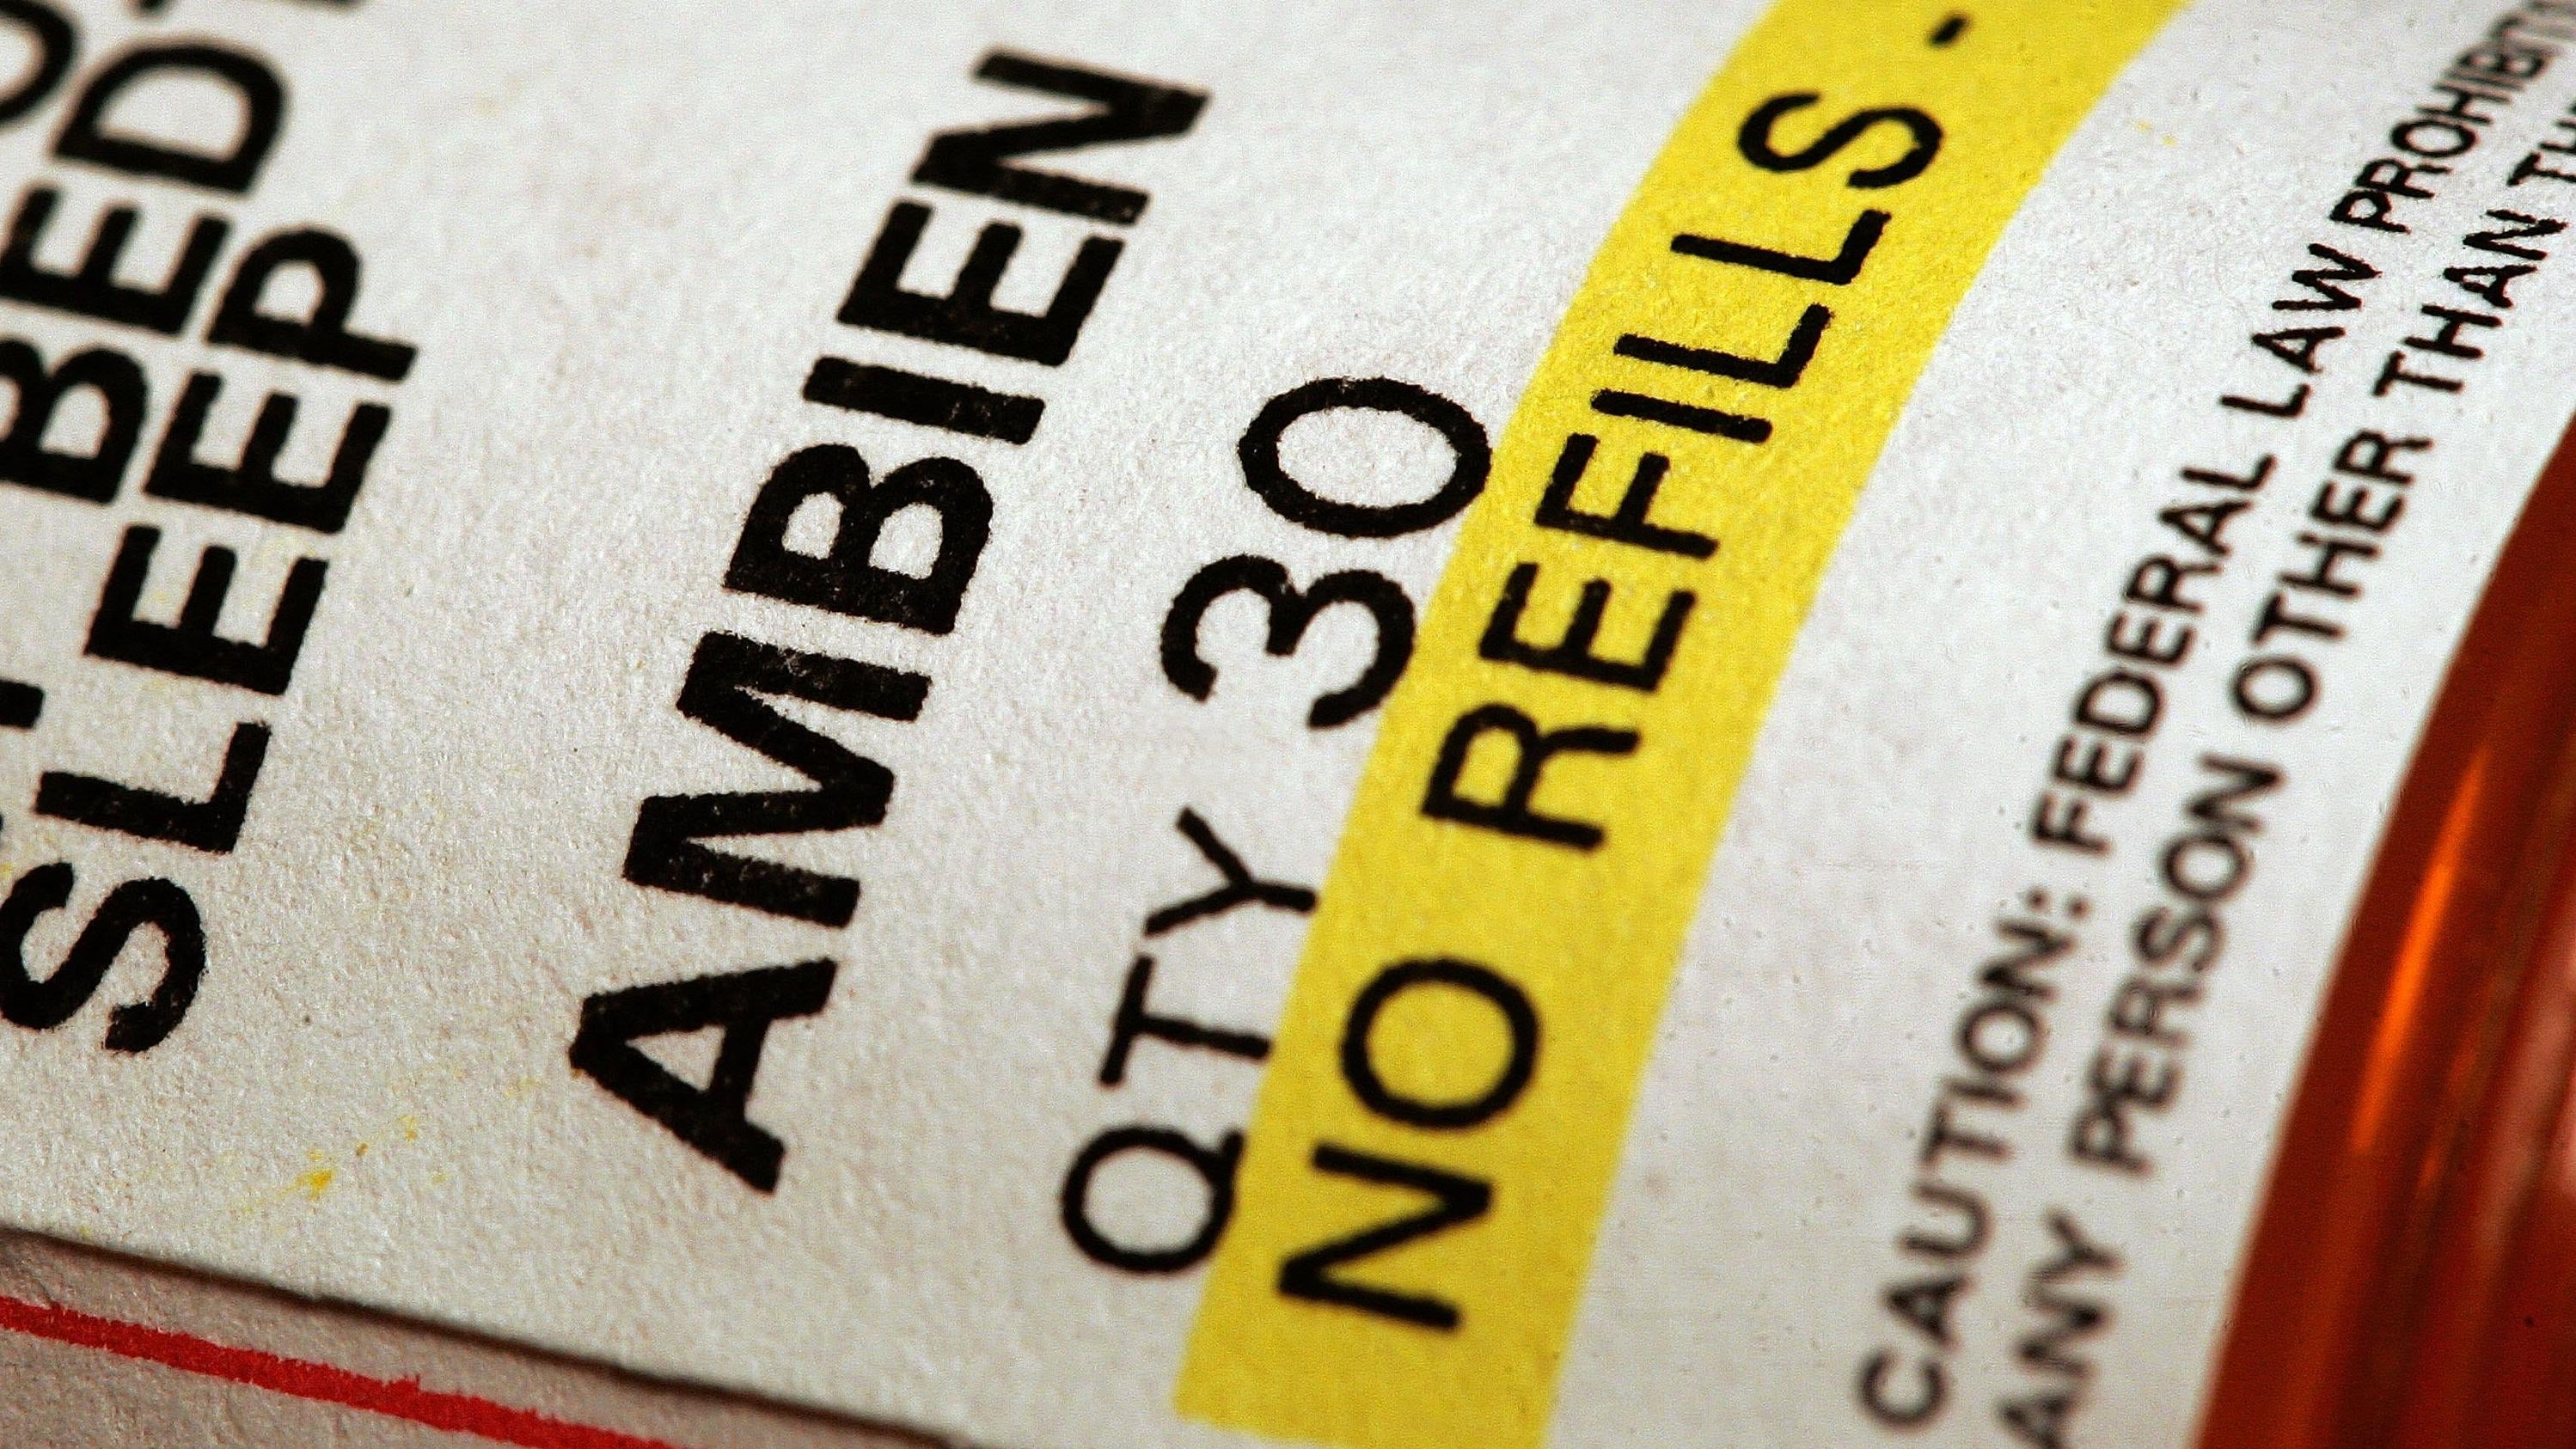 Sleep Drugs Like Ambien Will Get A New FDA Warning About Potentially Fatal Side Effects